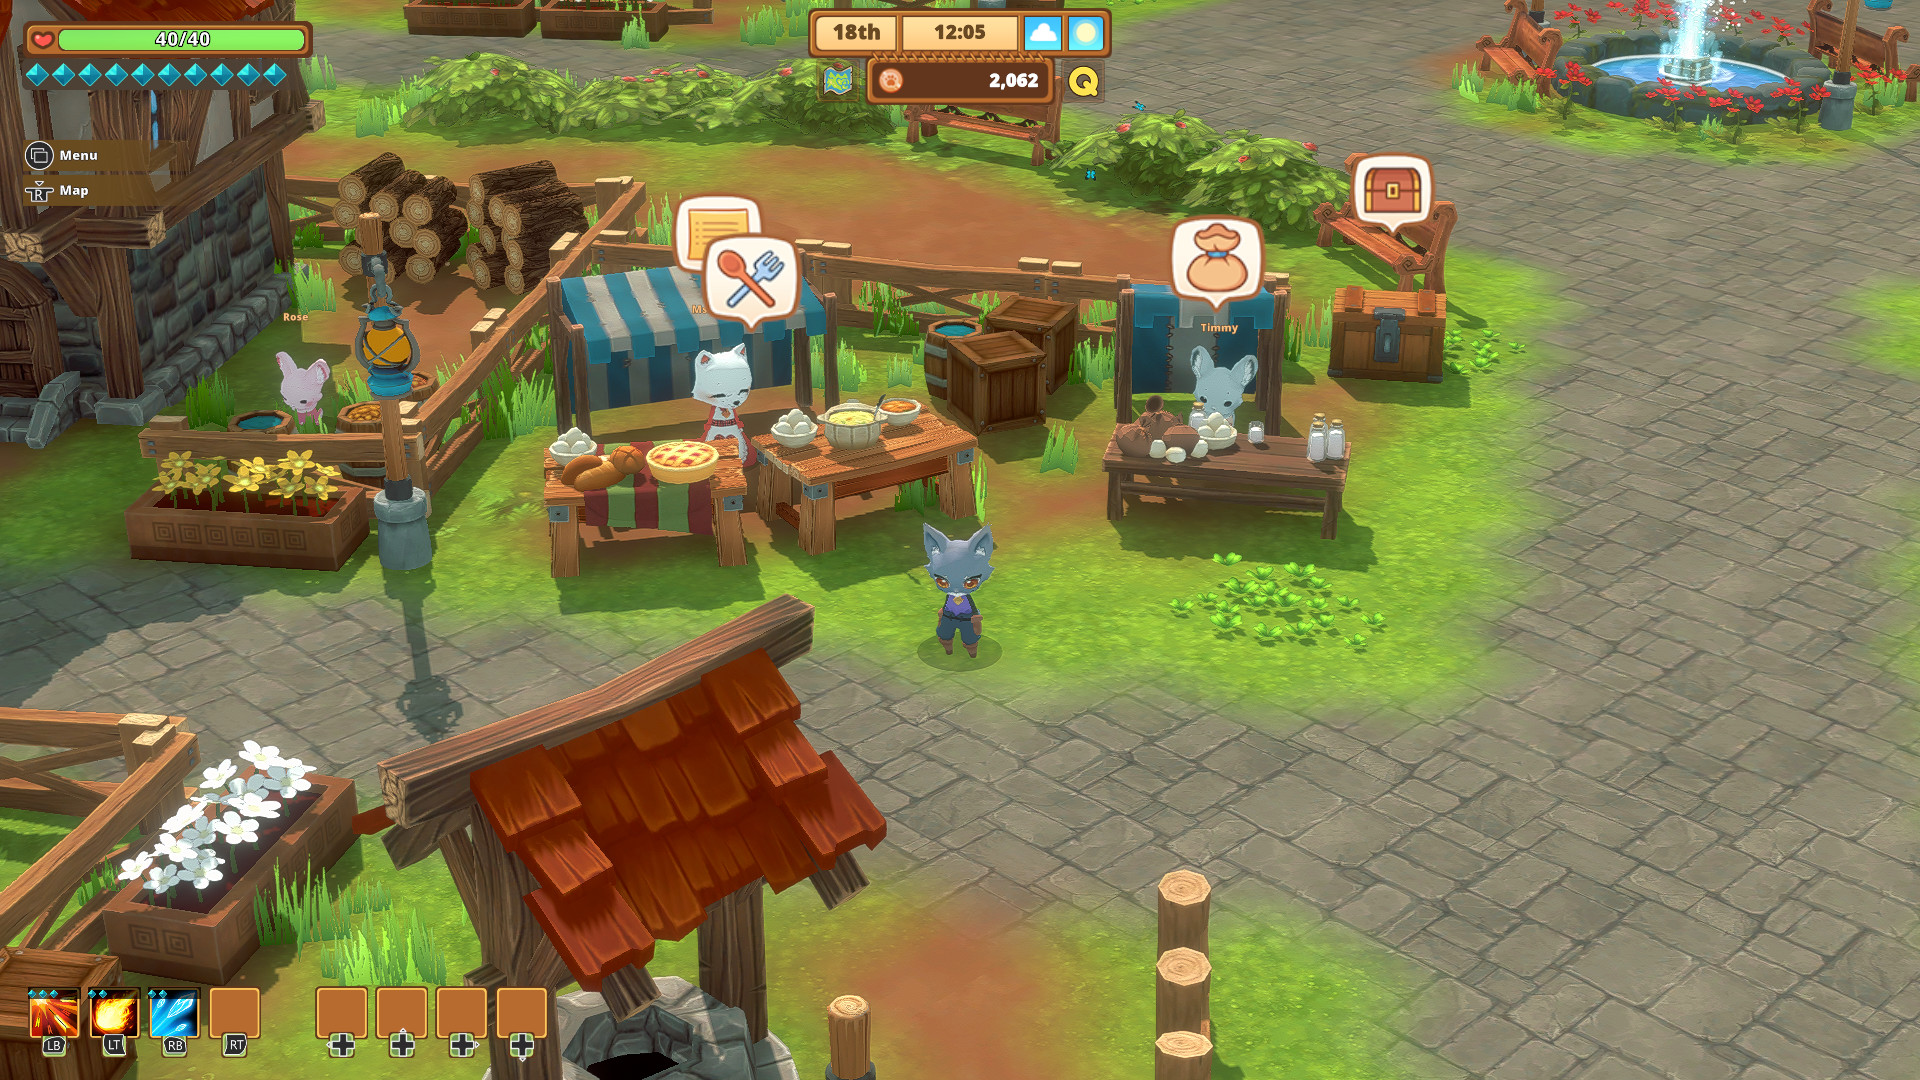 Kitaria Fables is Stardew Valley with playable cats and more swords, and it's out now